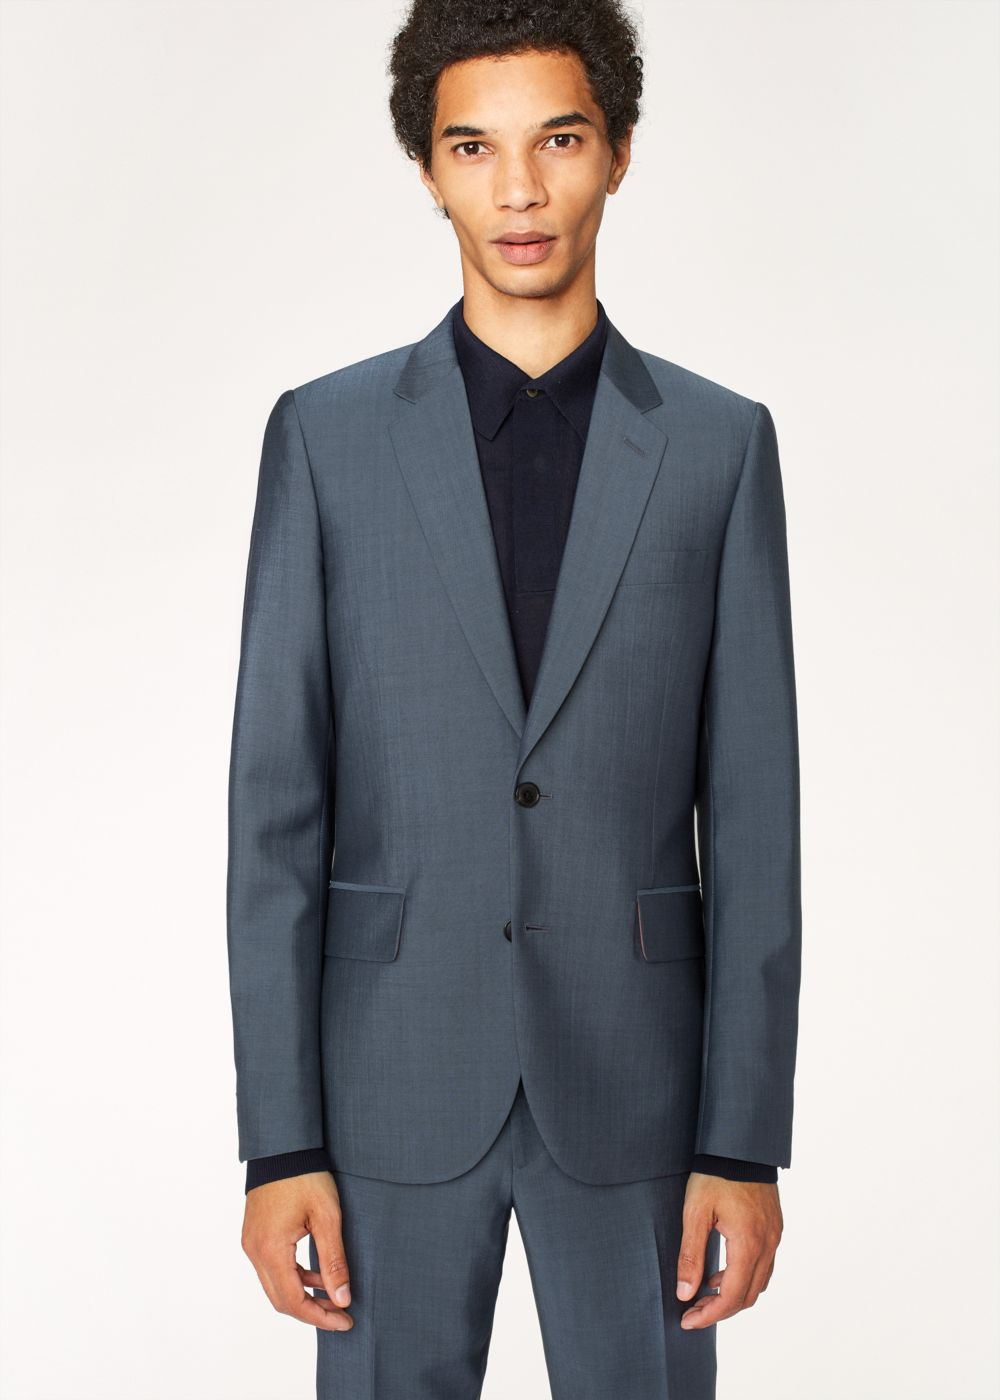 Paul Smith The Soho - Men's Tailored-Fit Slate Blue Wool-Mohair Suit